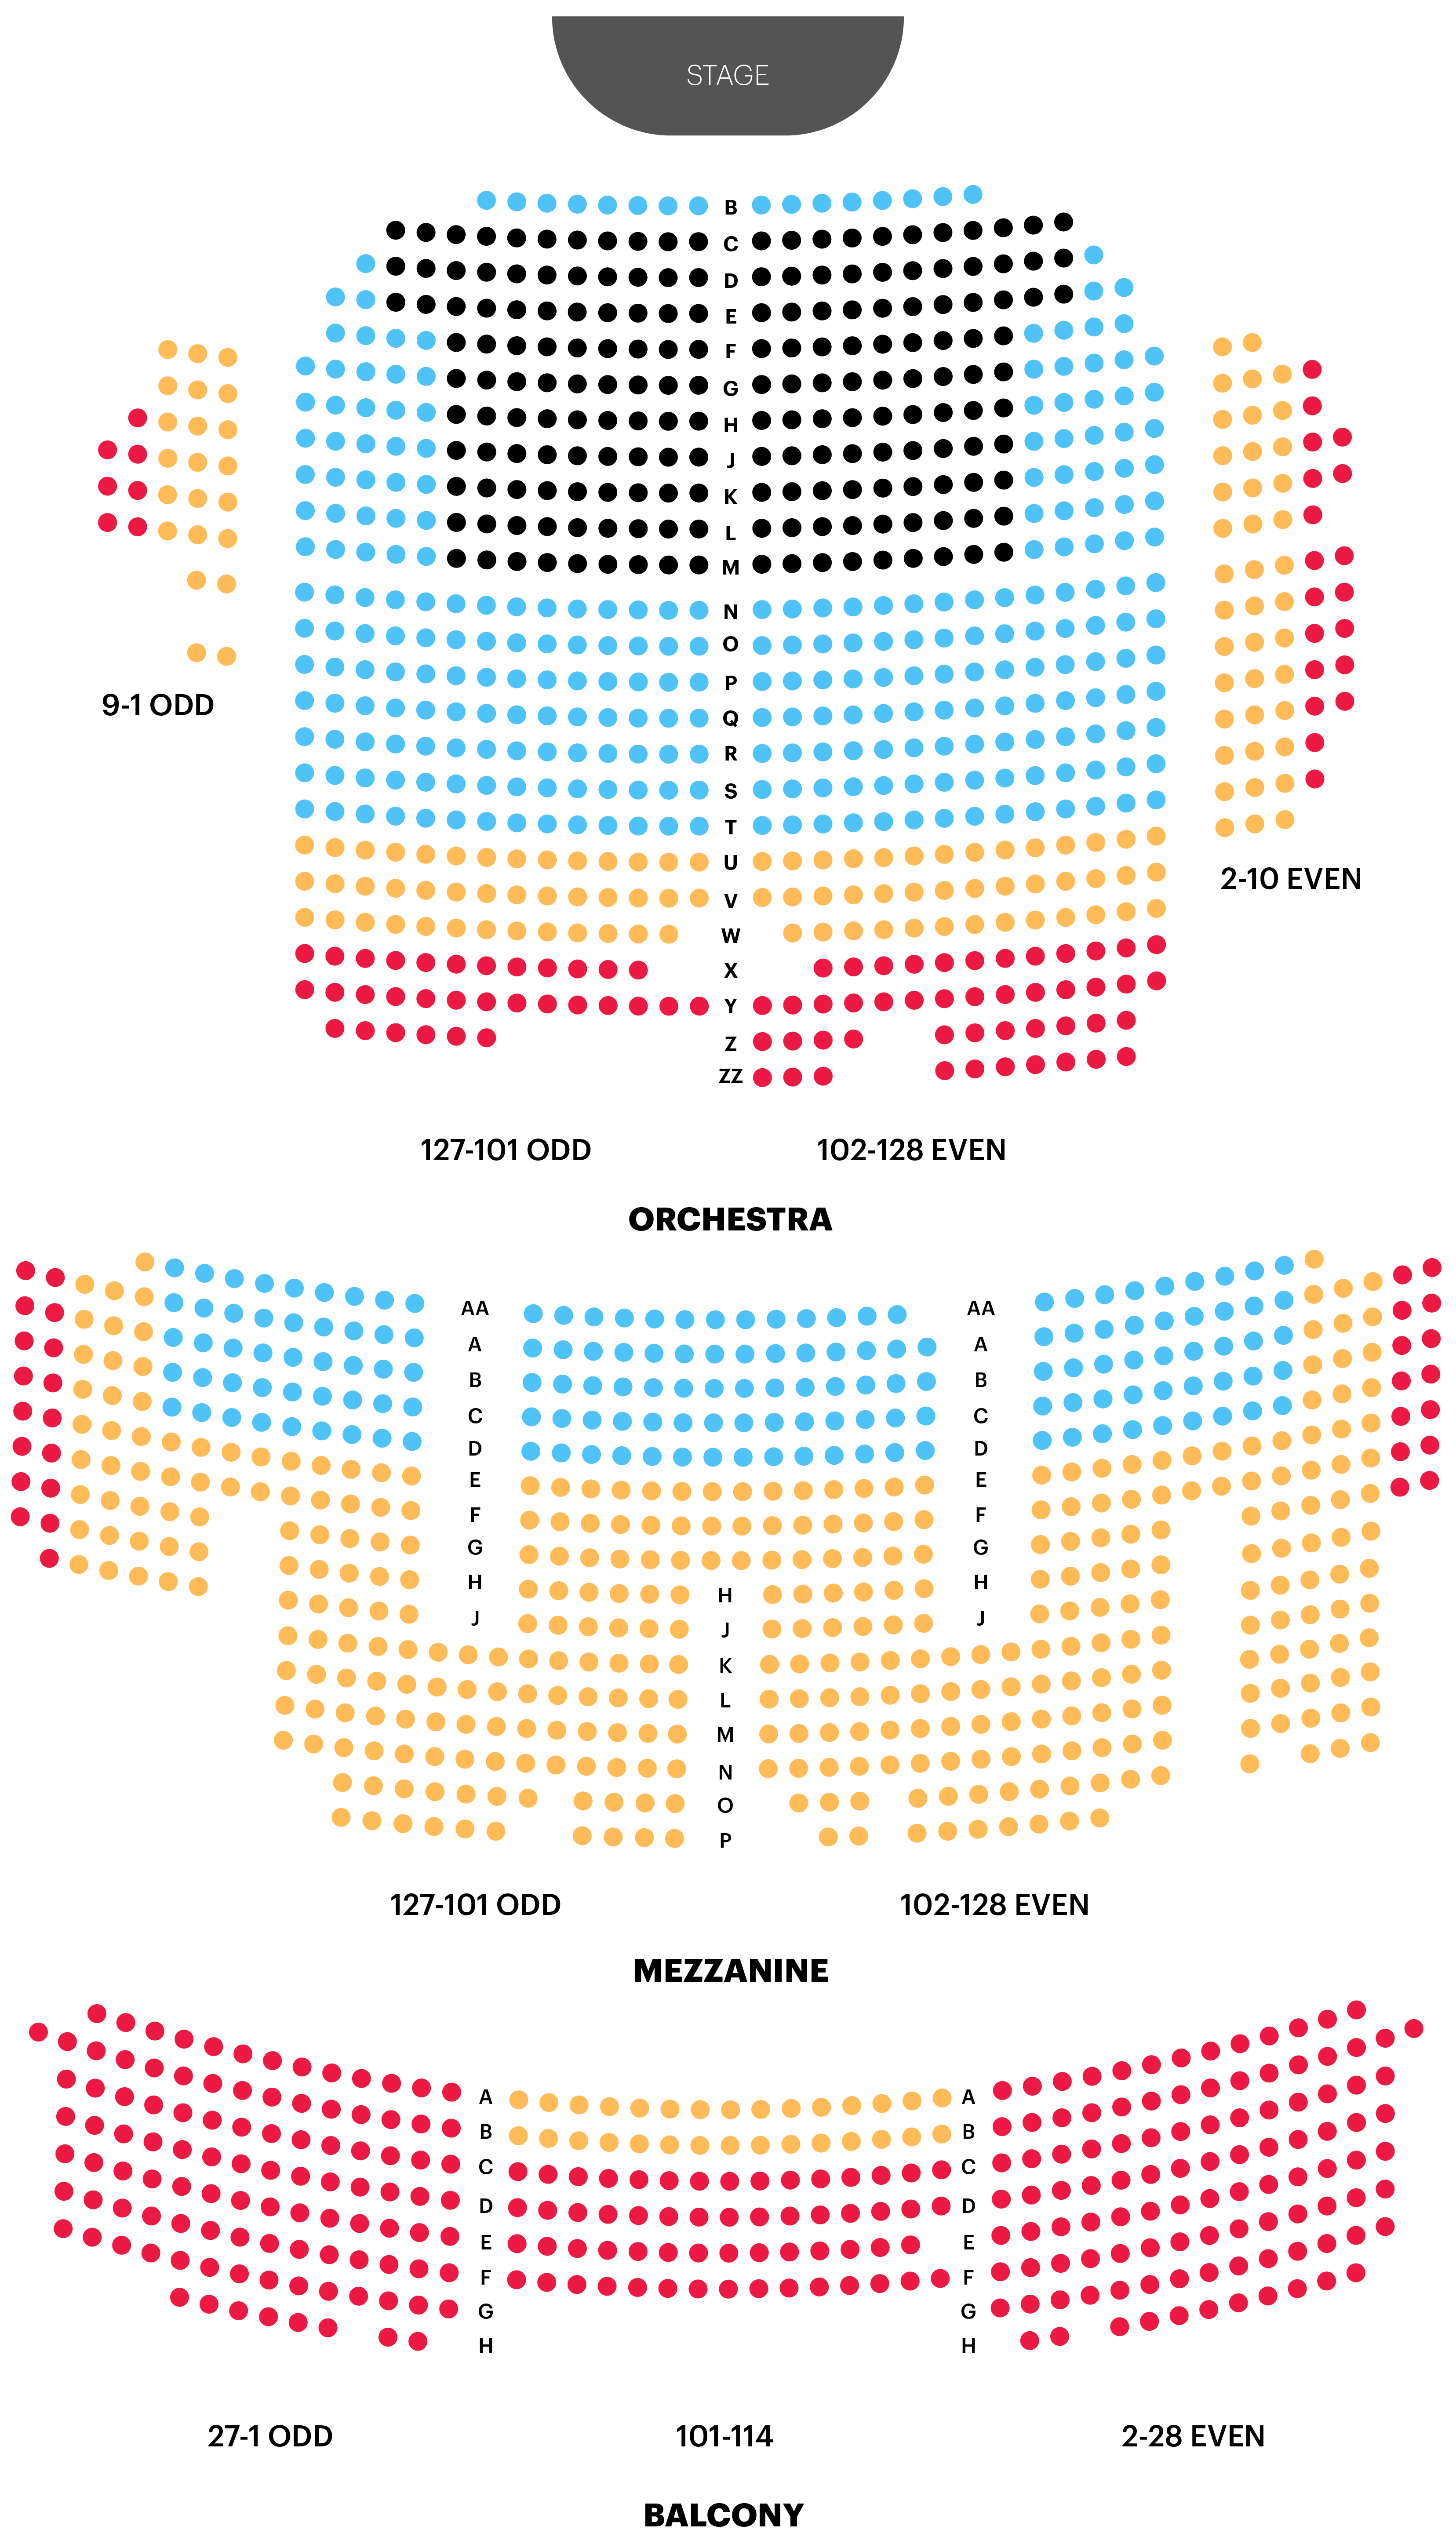 Palace Theatre Seating Chart Map